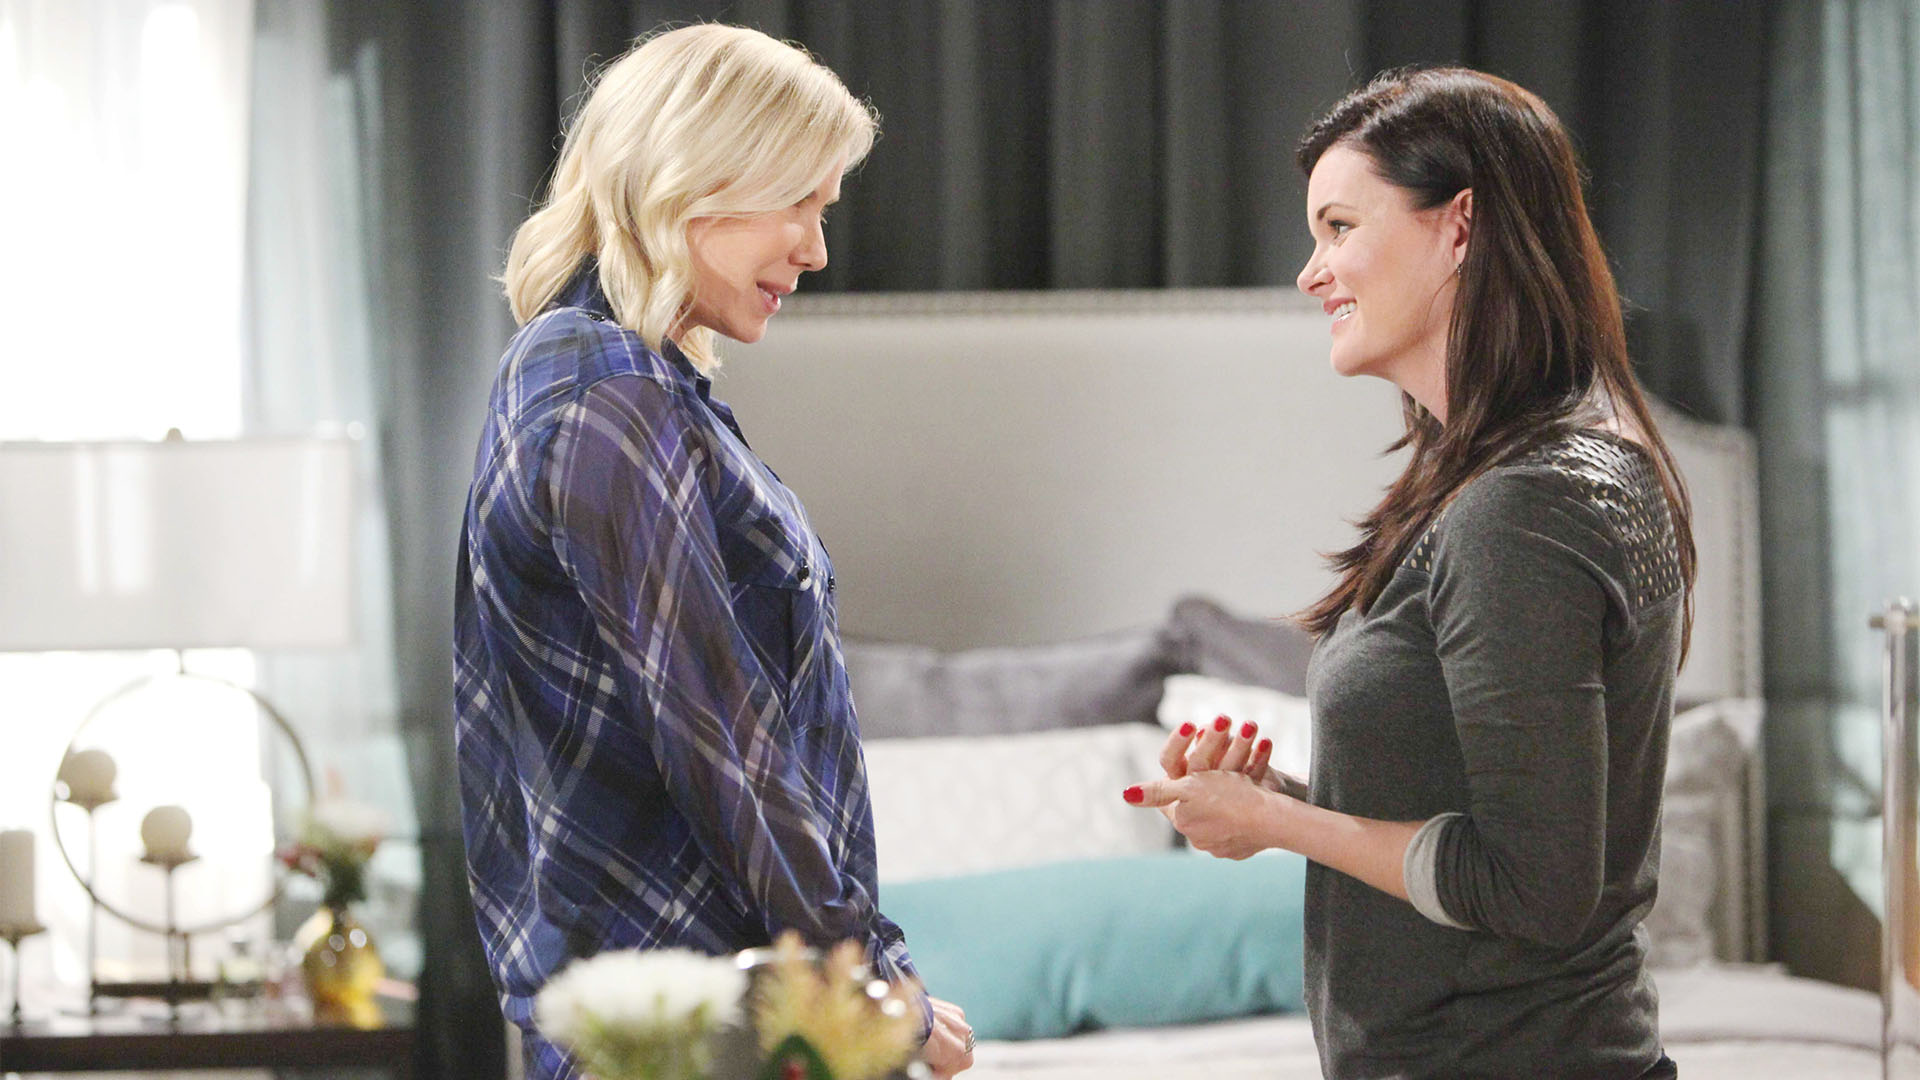 Having learned of Katie's on-going affair with Wyatt, Brooke warns her sister to be careful of Bill.